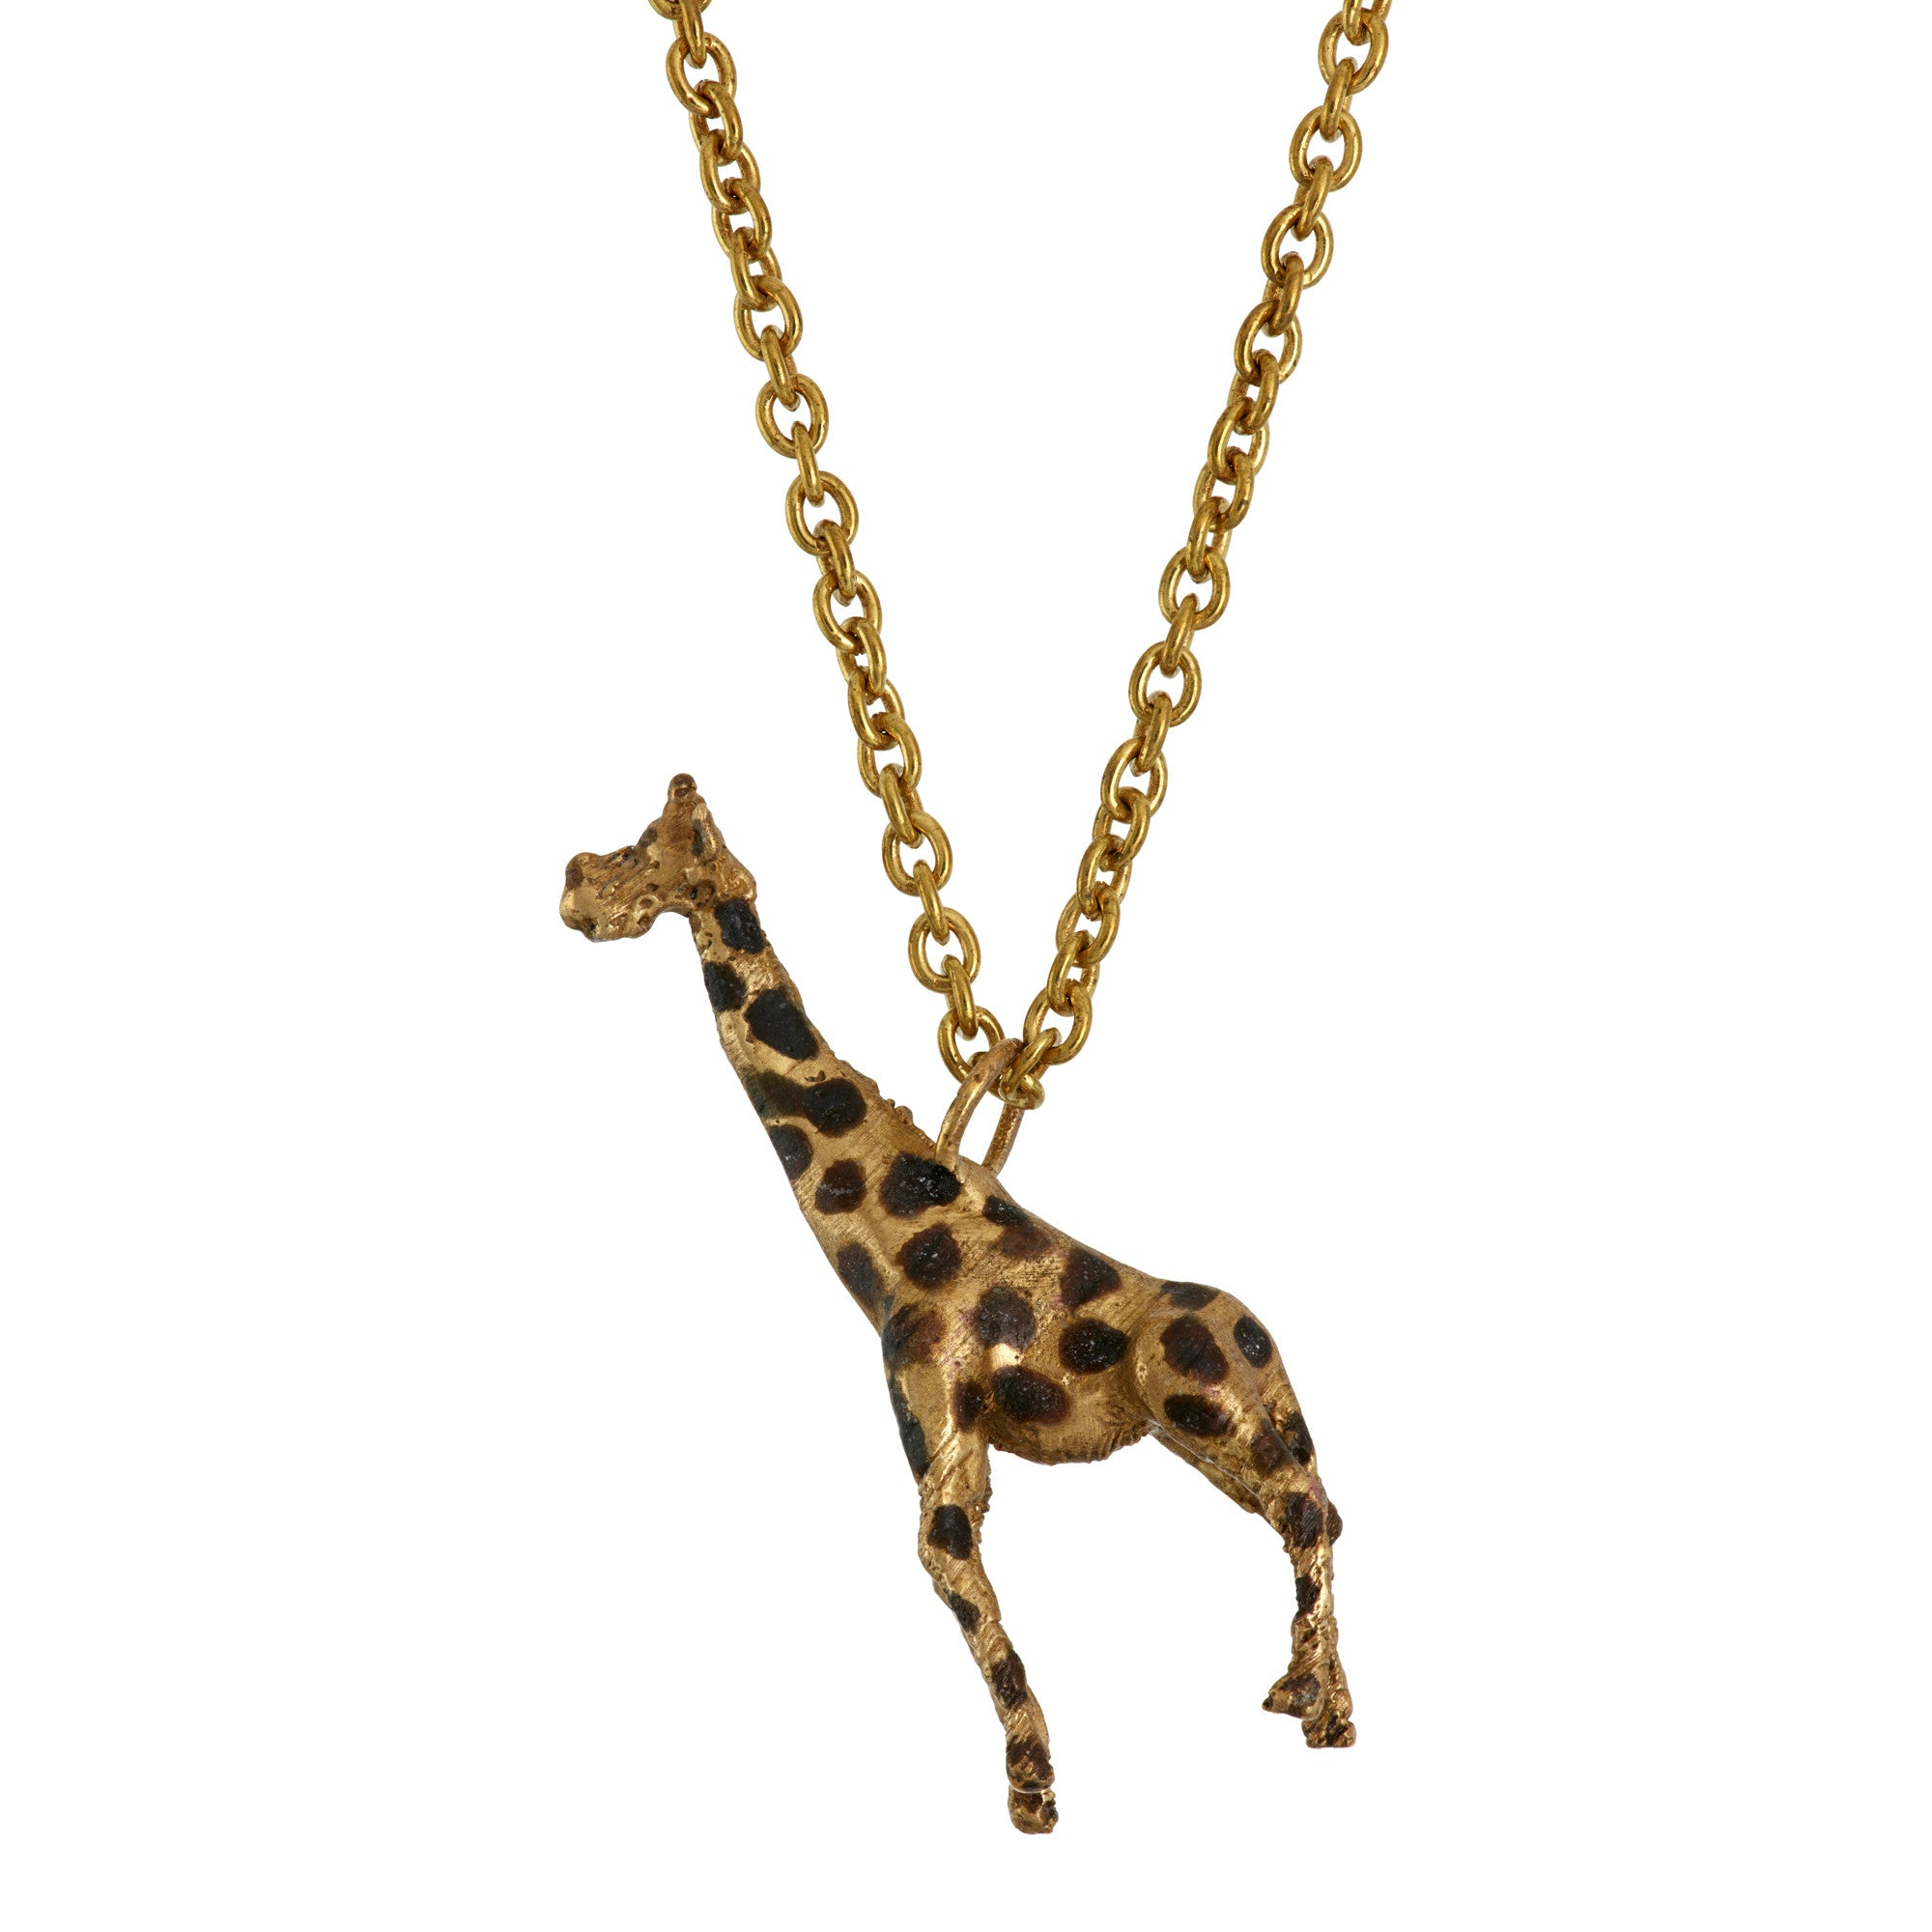 necklace gold white black giraffe of diamond cttw and s pendant picture p